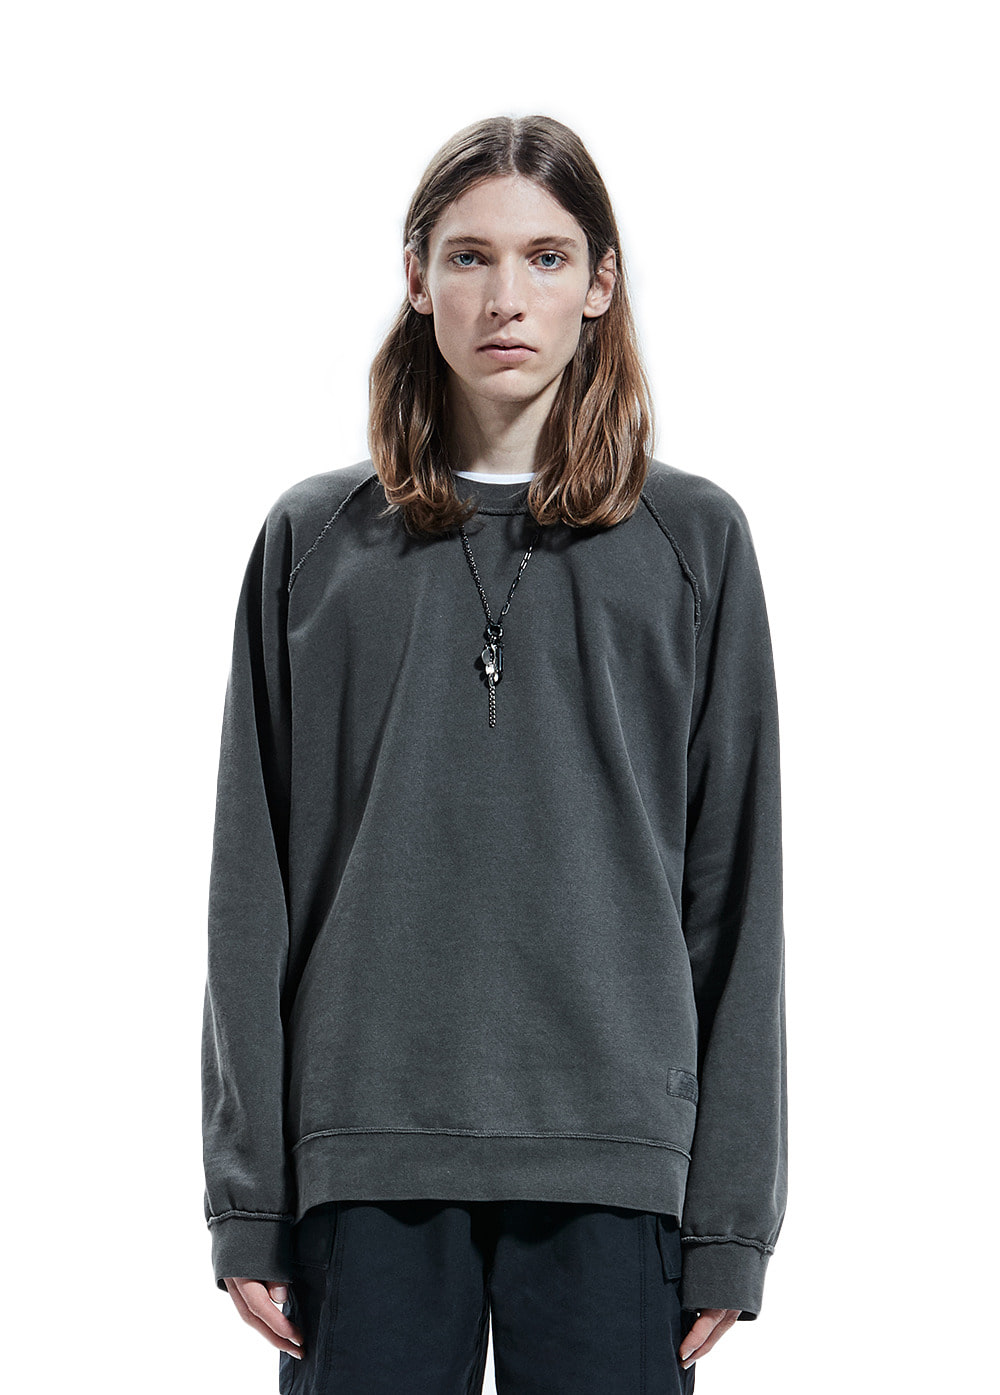 P-DYED RAGLAN SWEATSHIRT charcoal